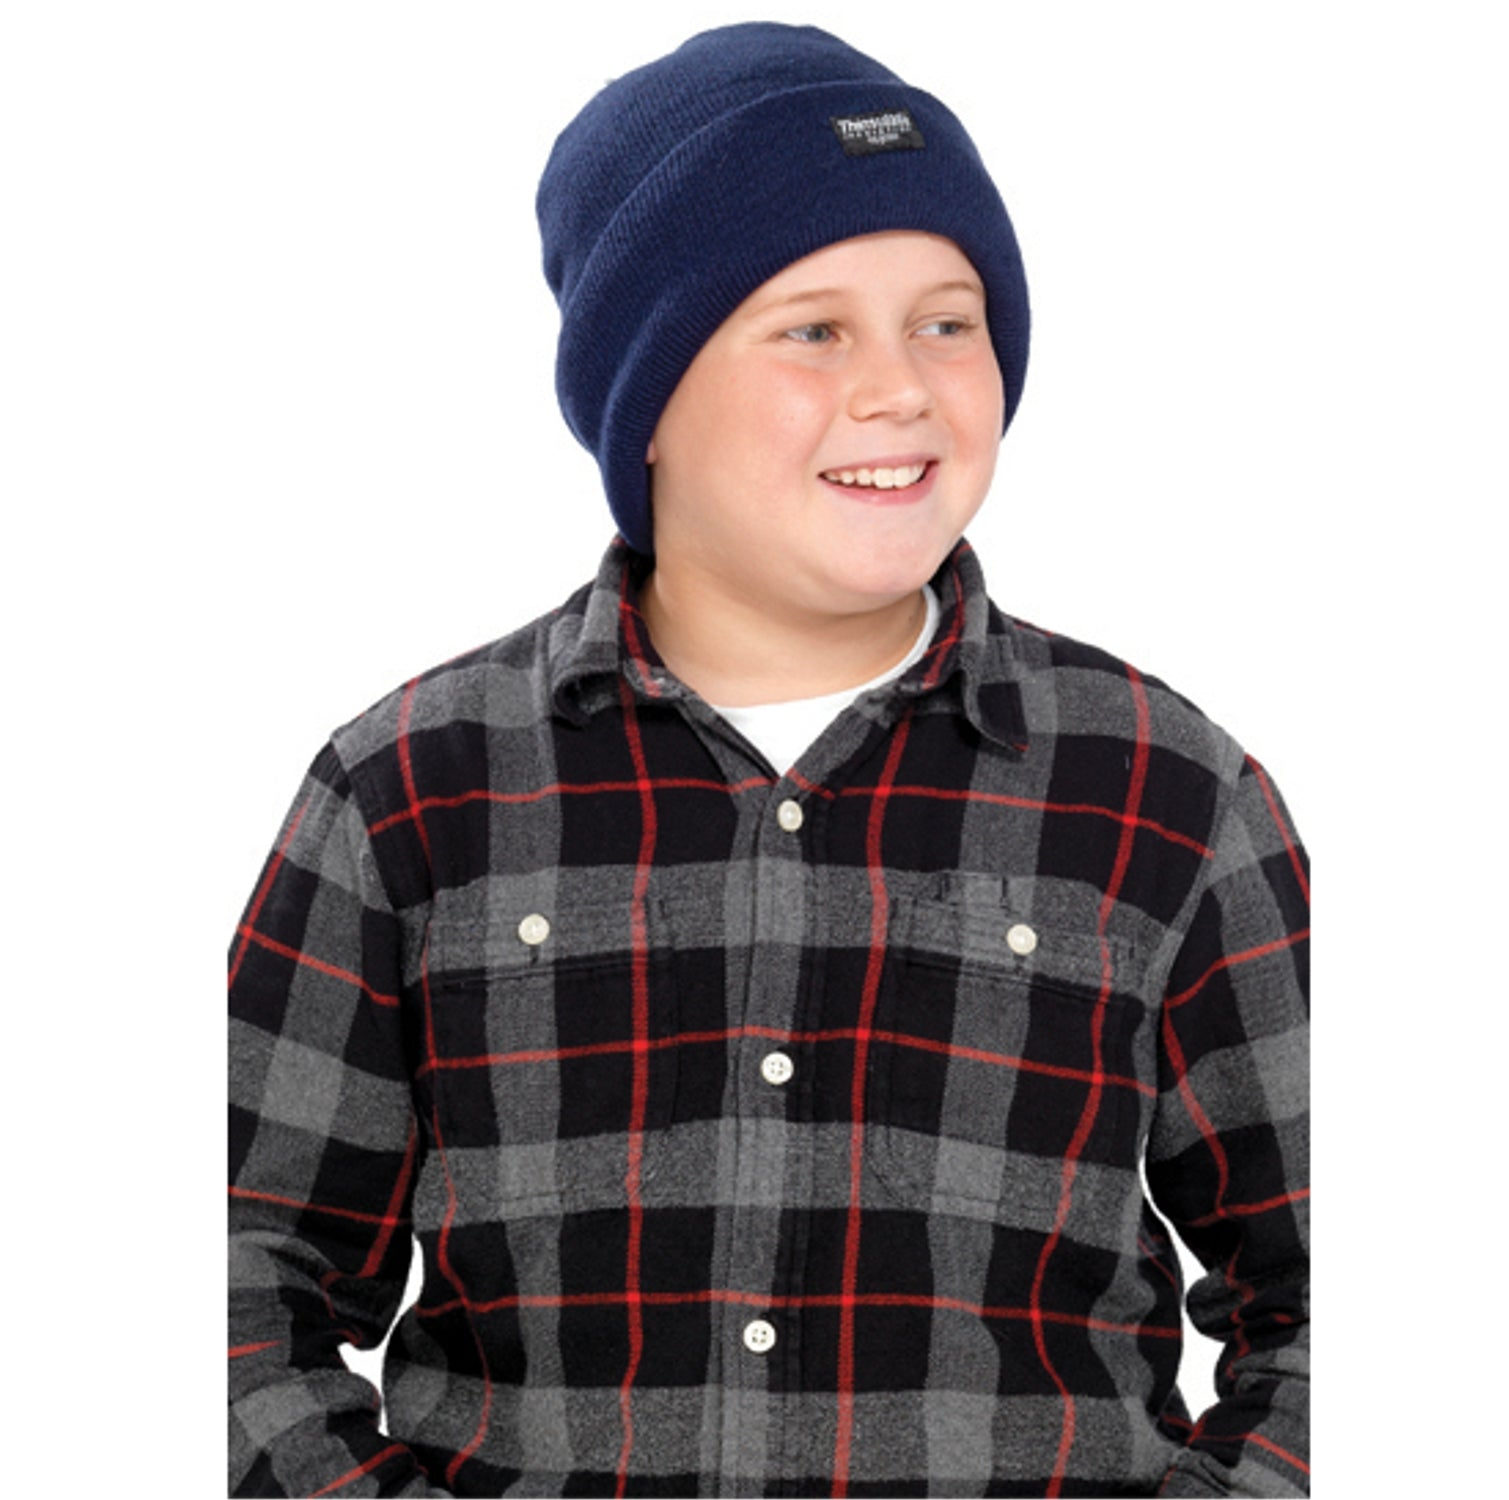 Octave Boys Thermal Thinsulate Hat - The Original Warmth Without Bulk